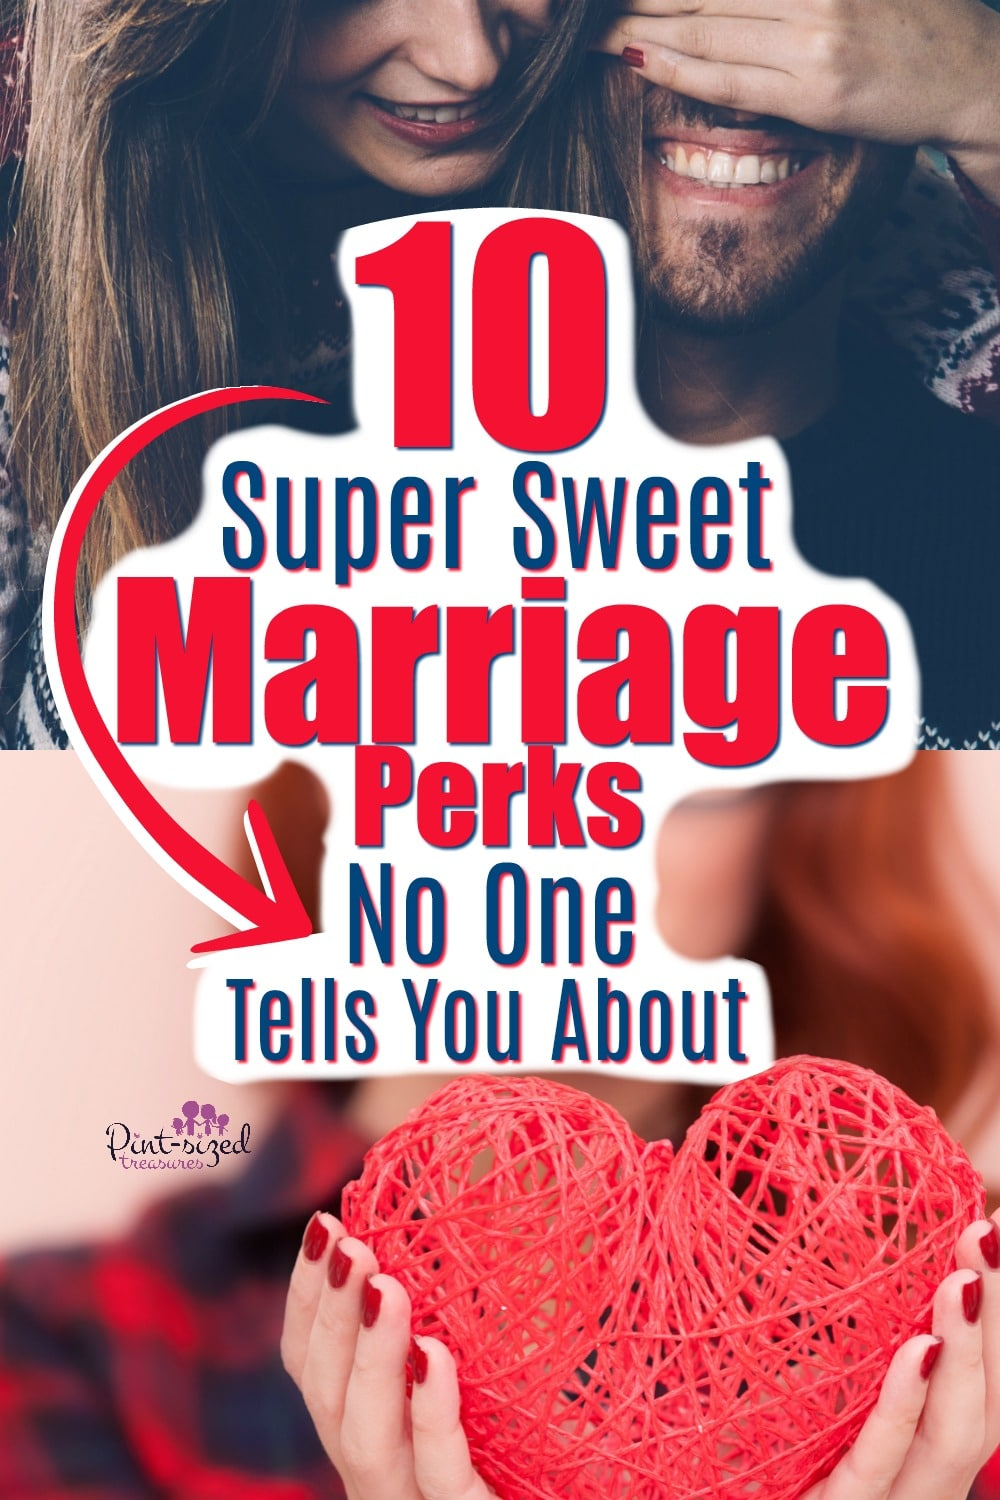 marriage perks people don't tell you